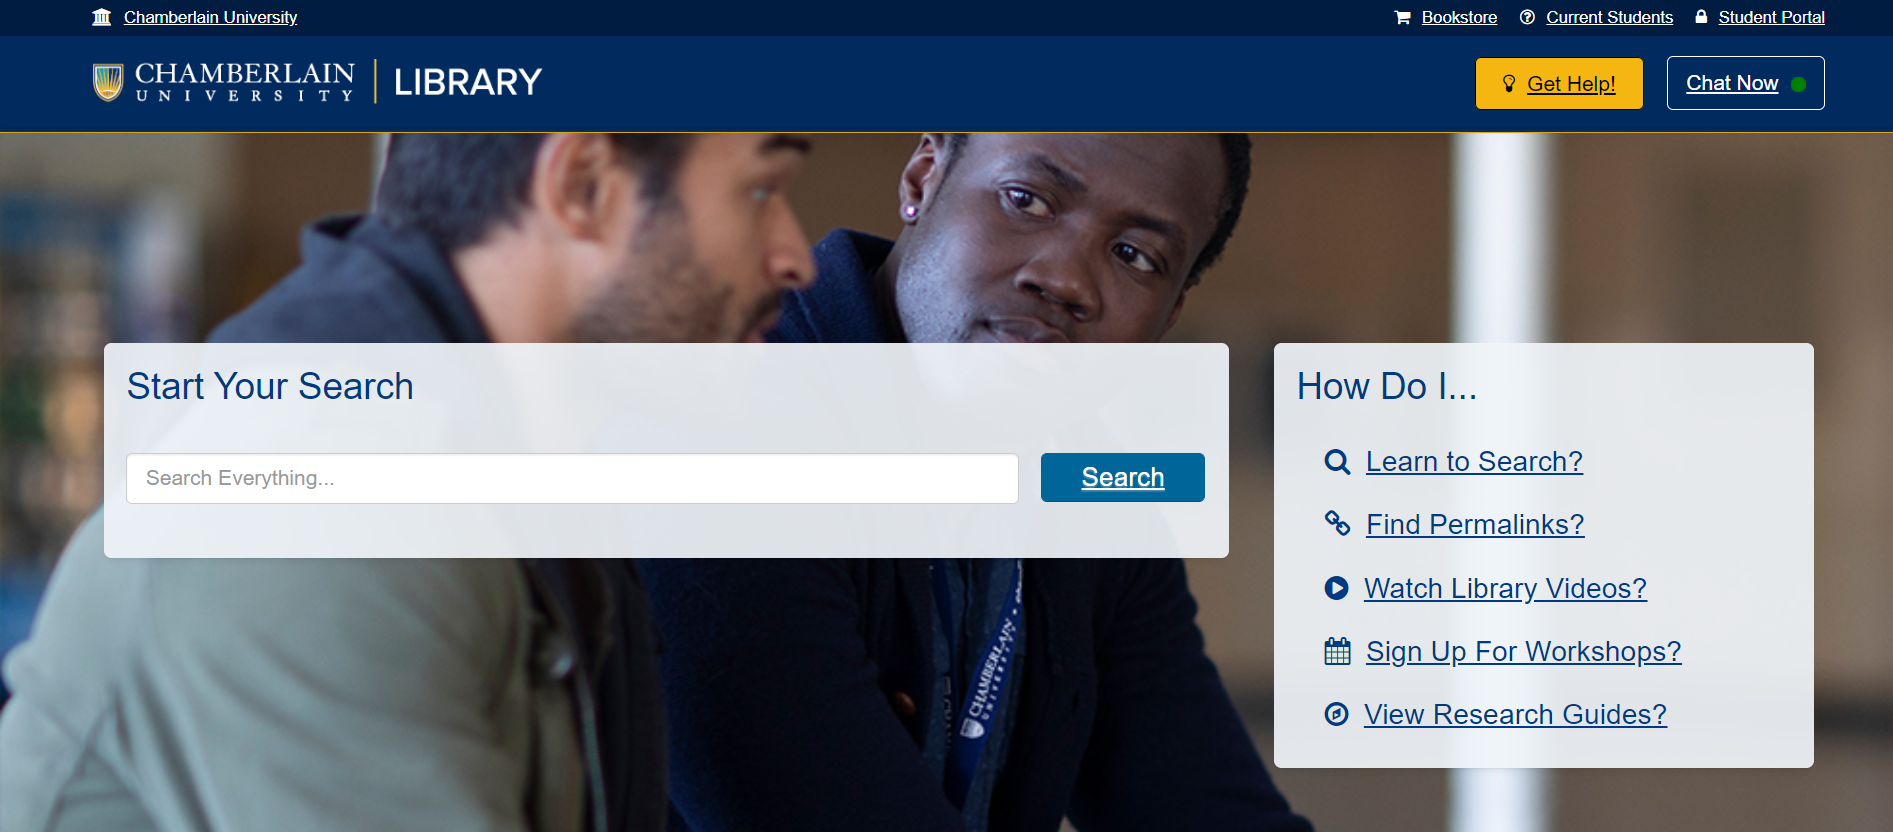 Search Everything system on the Chamberlain Library homepage